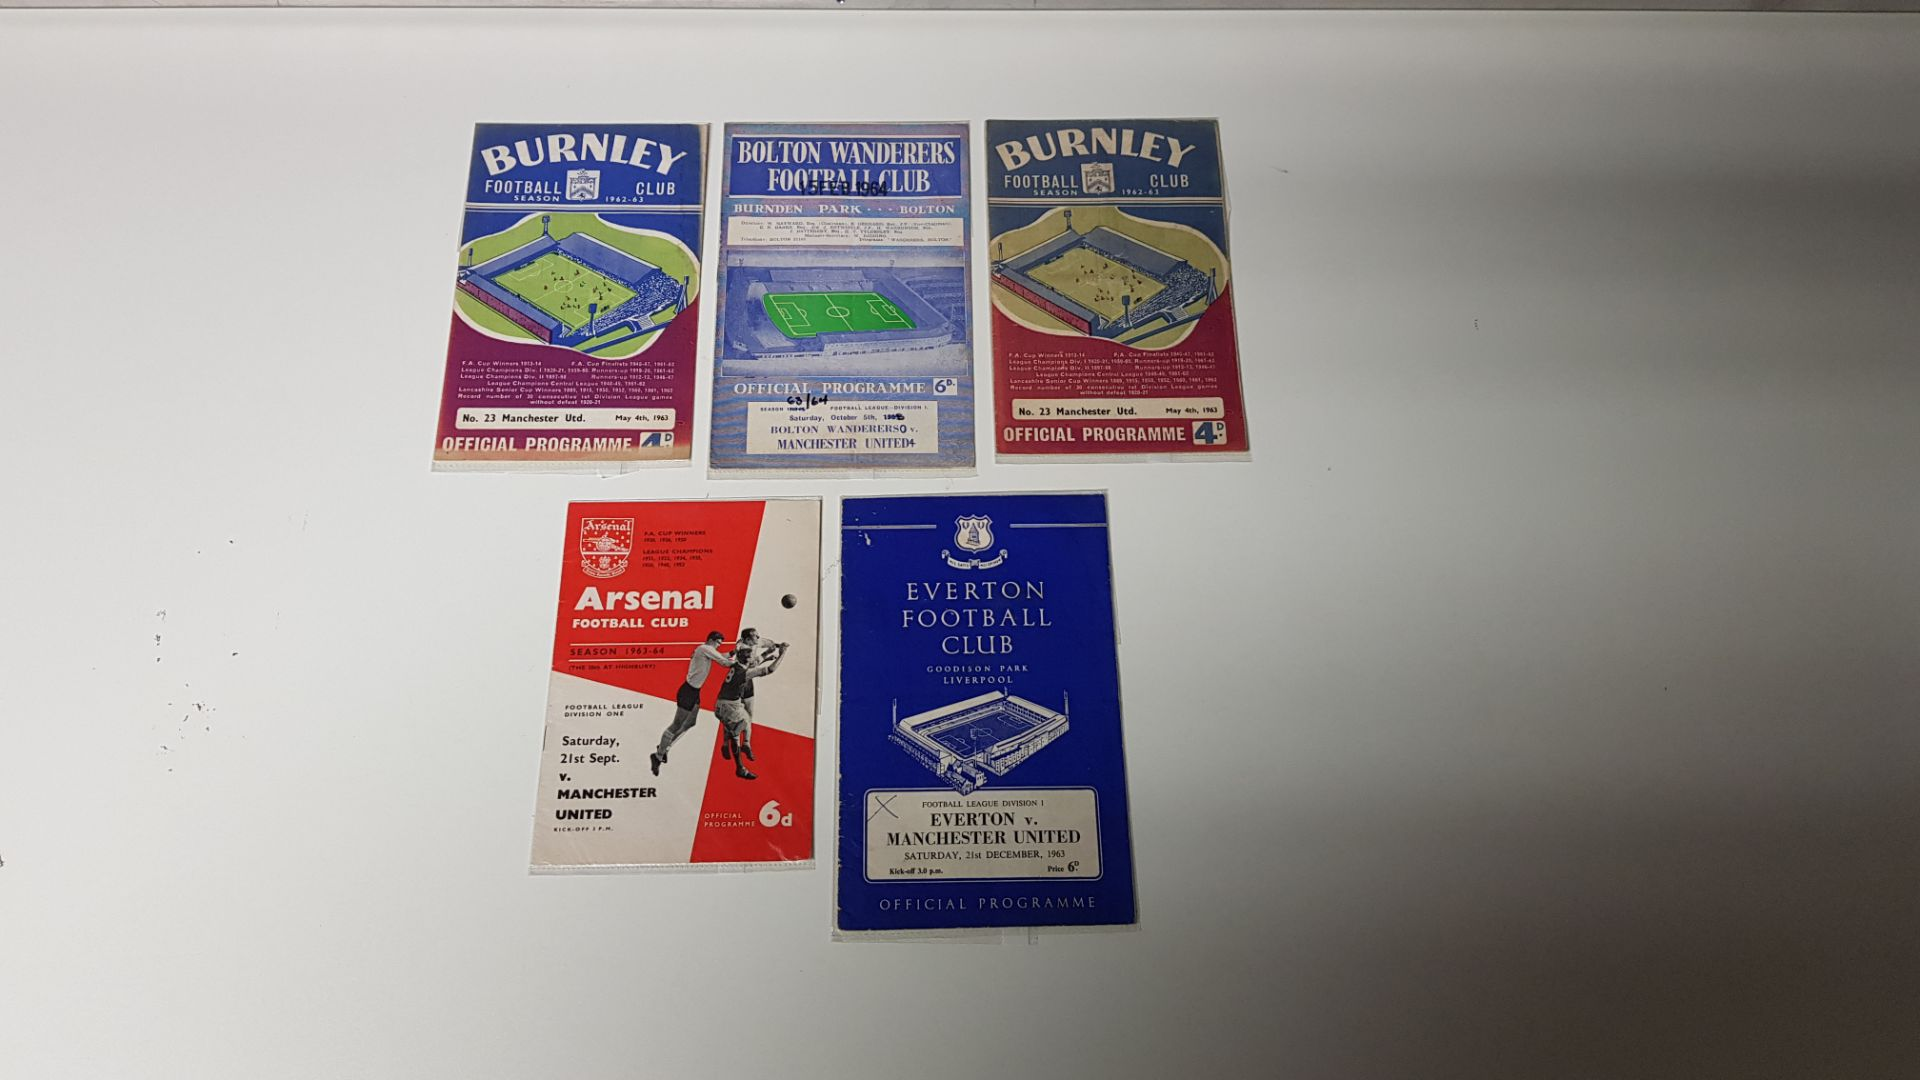 5 X MANCHESTER UNITED AWAY PROGRAMMES FROM THE 1963 SEASON TO INCLUDE MANCHESTER UNITED VS BOLTON - Image 2 of 2